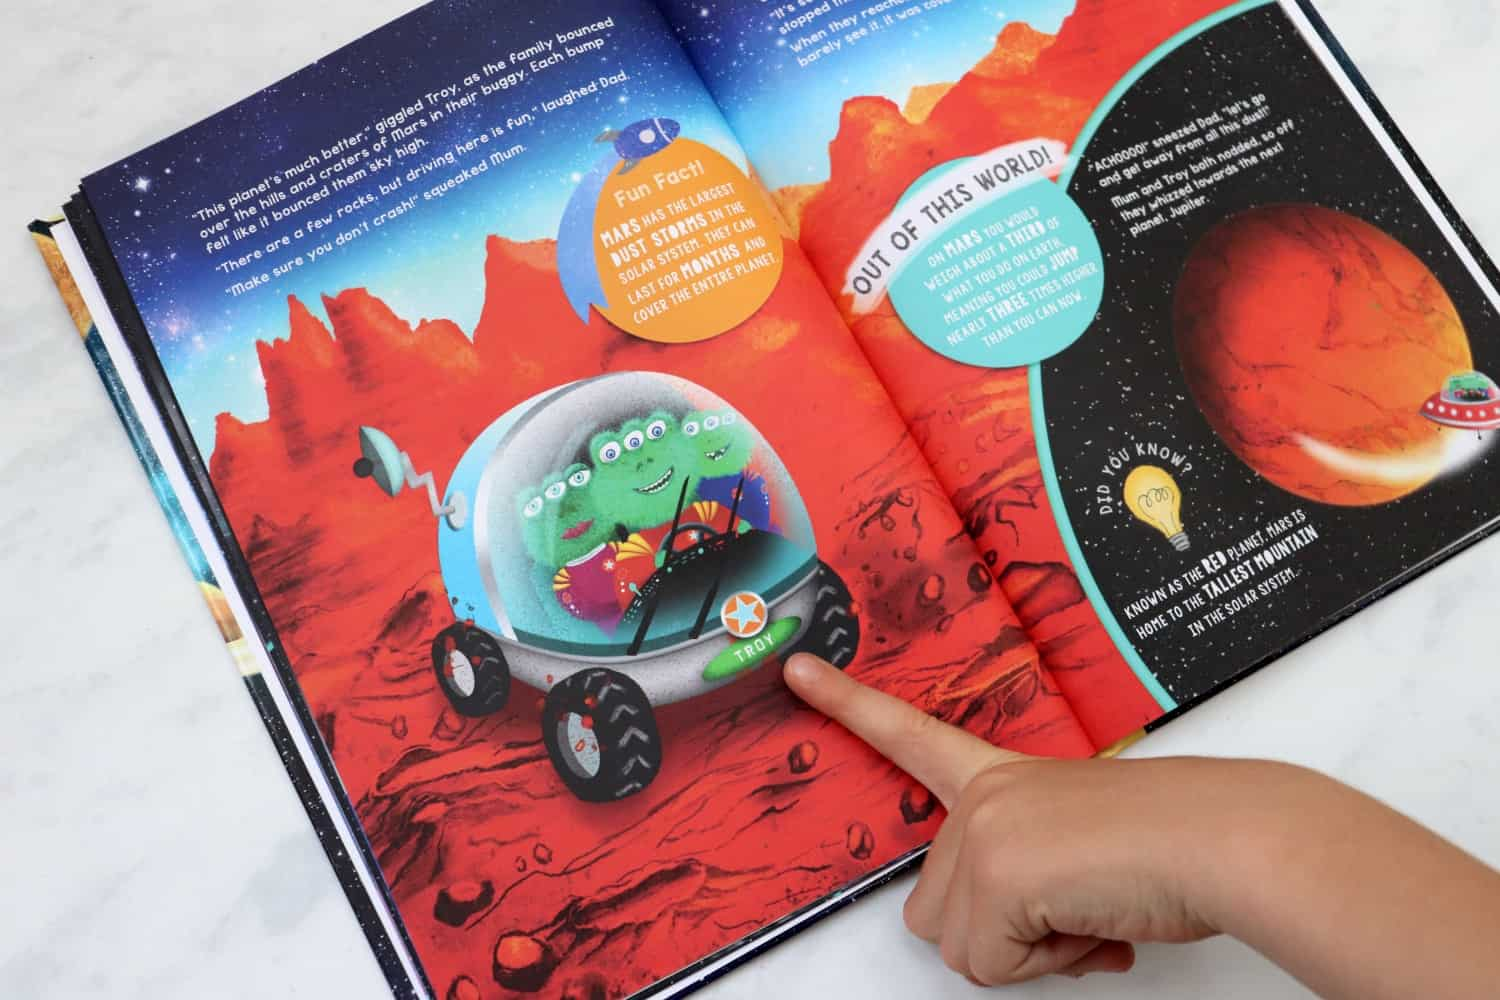 Introducing Personalised Books from In The Book